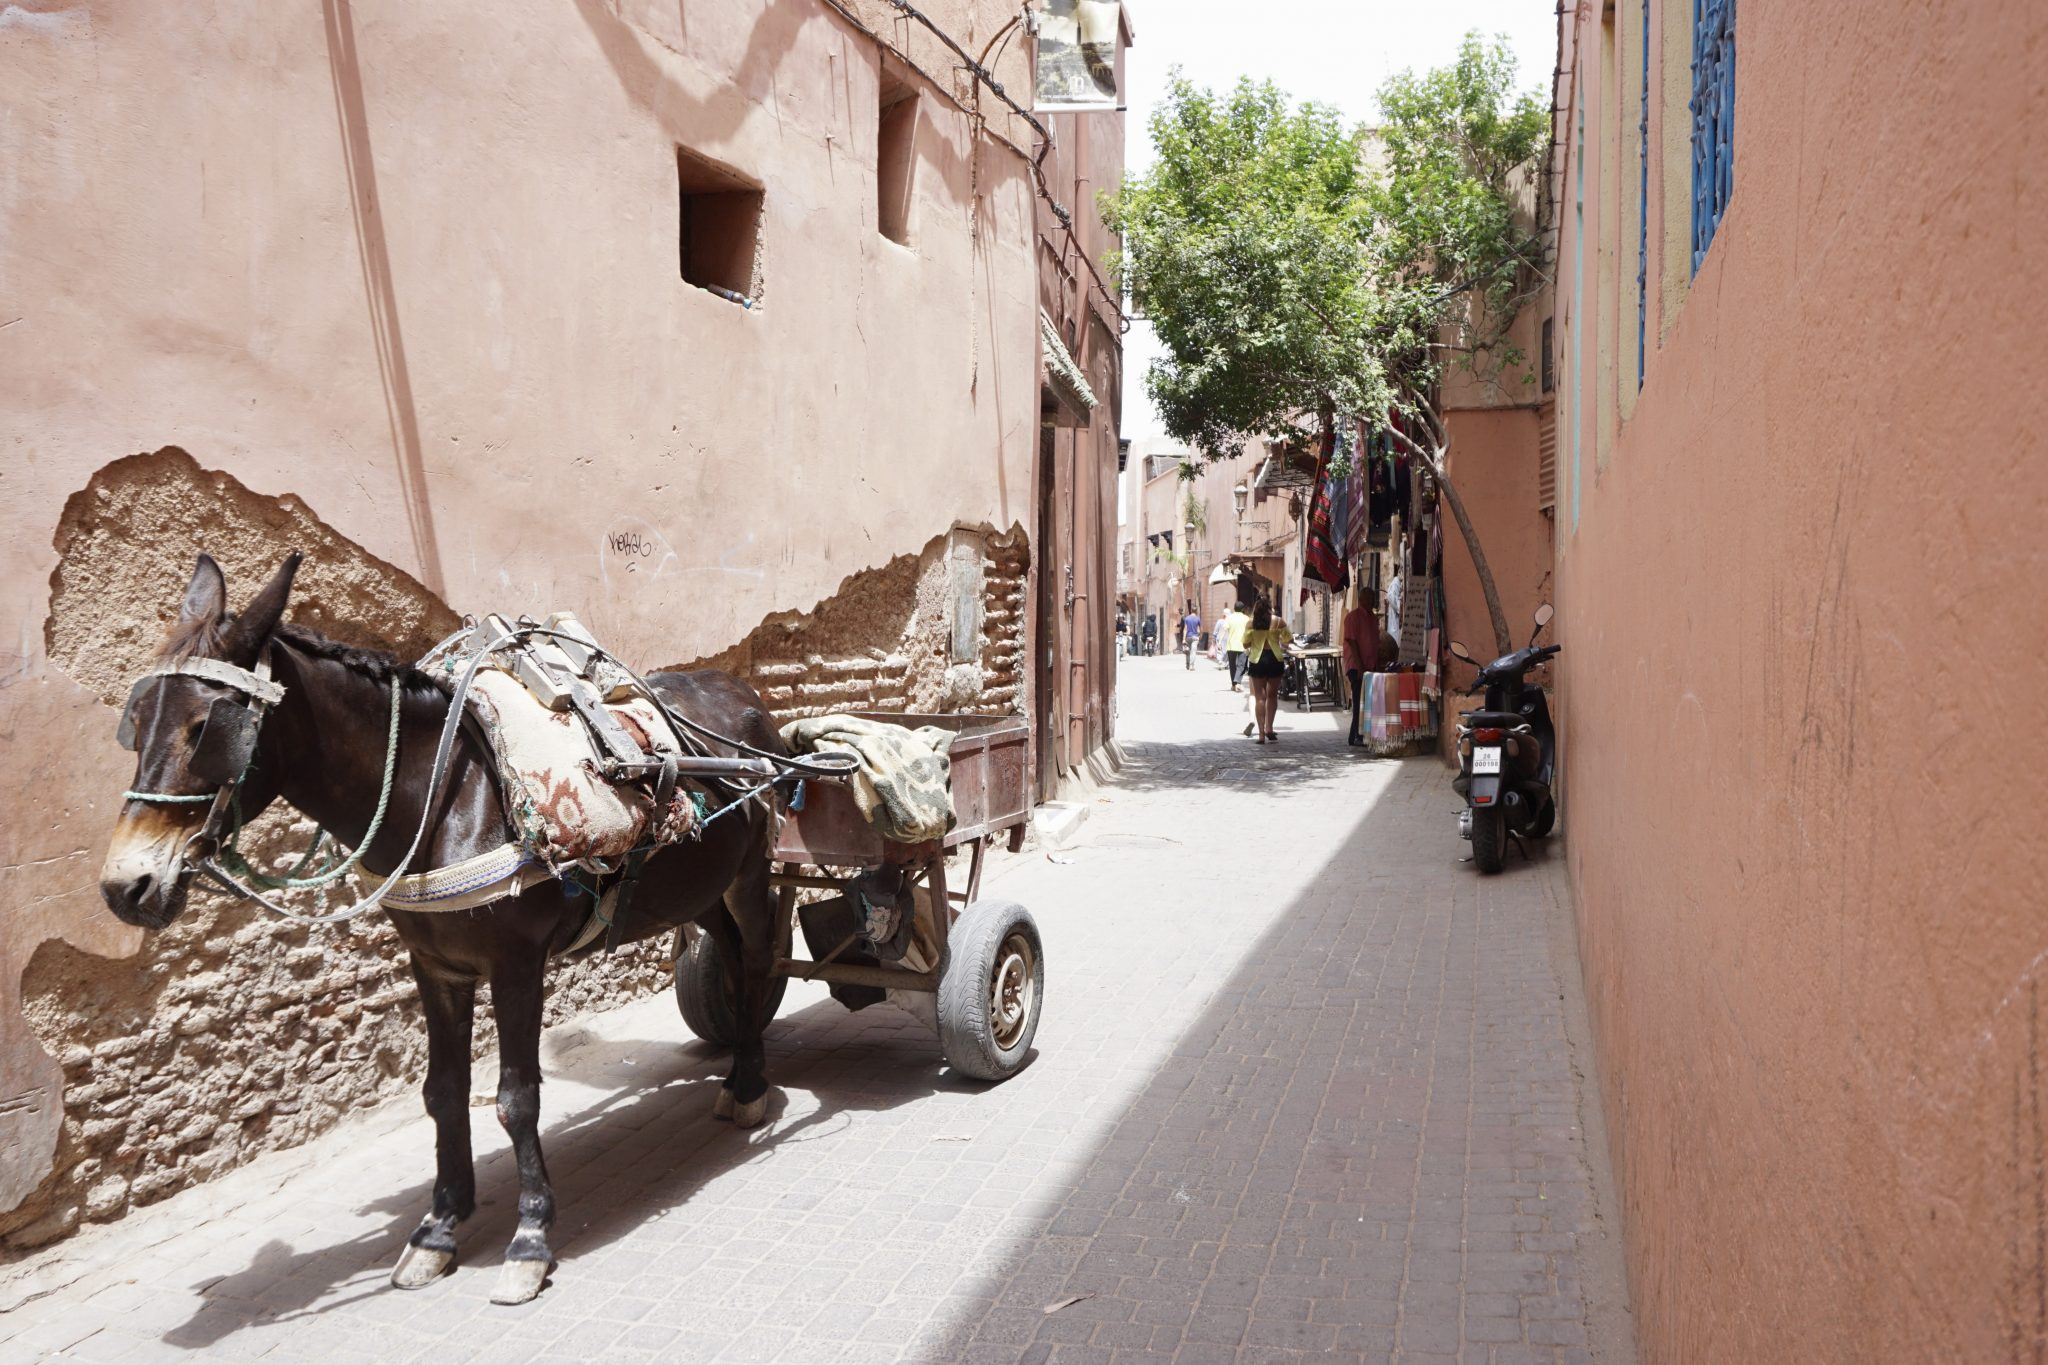 donkey, cart, marrakech, street